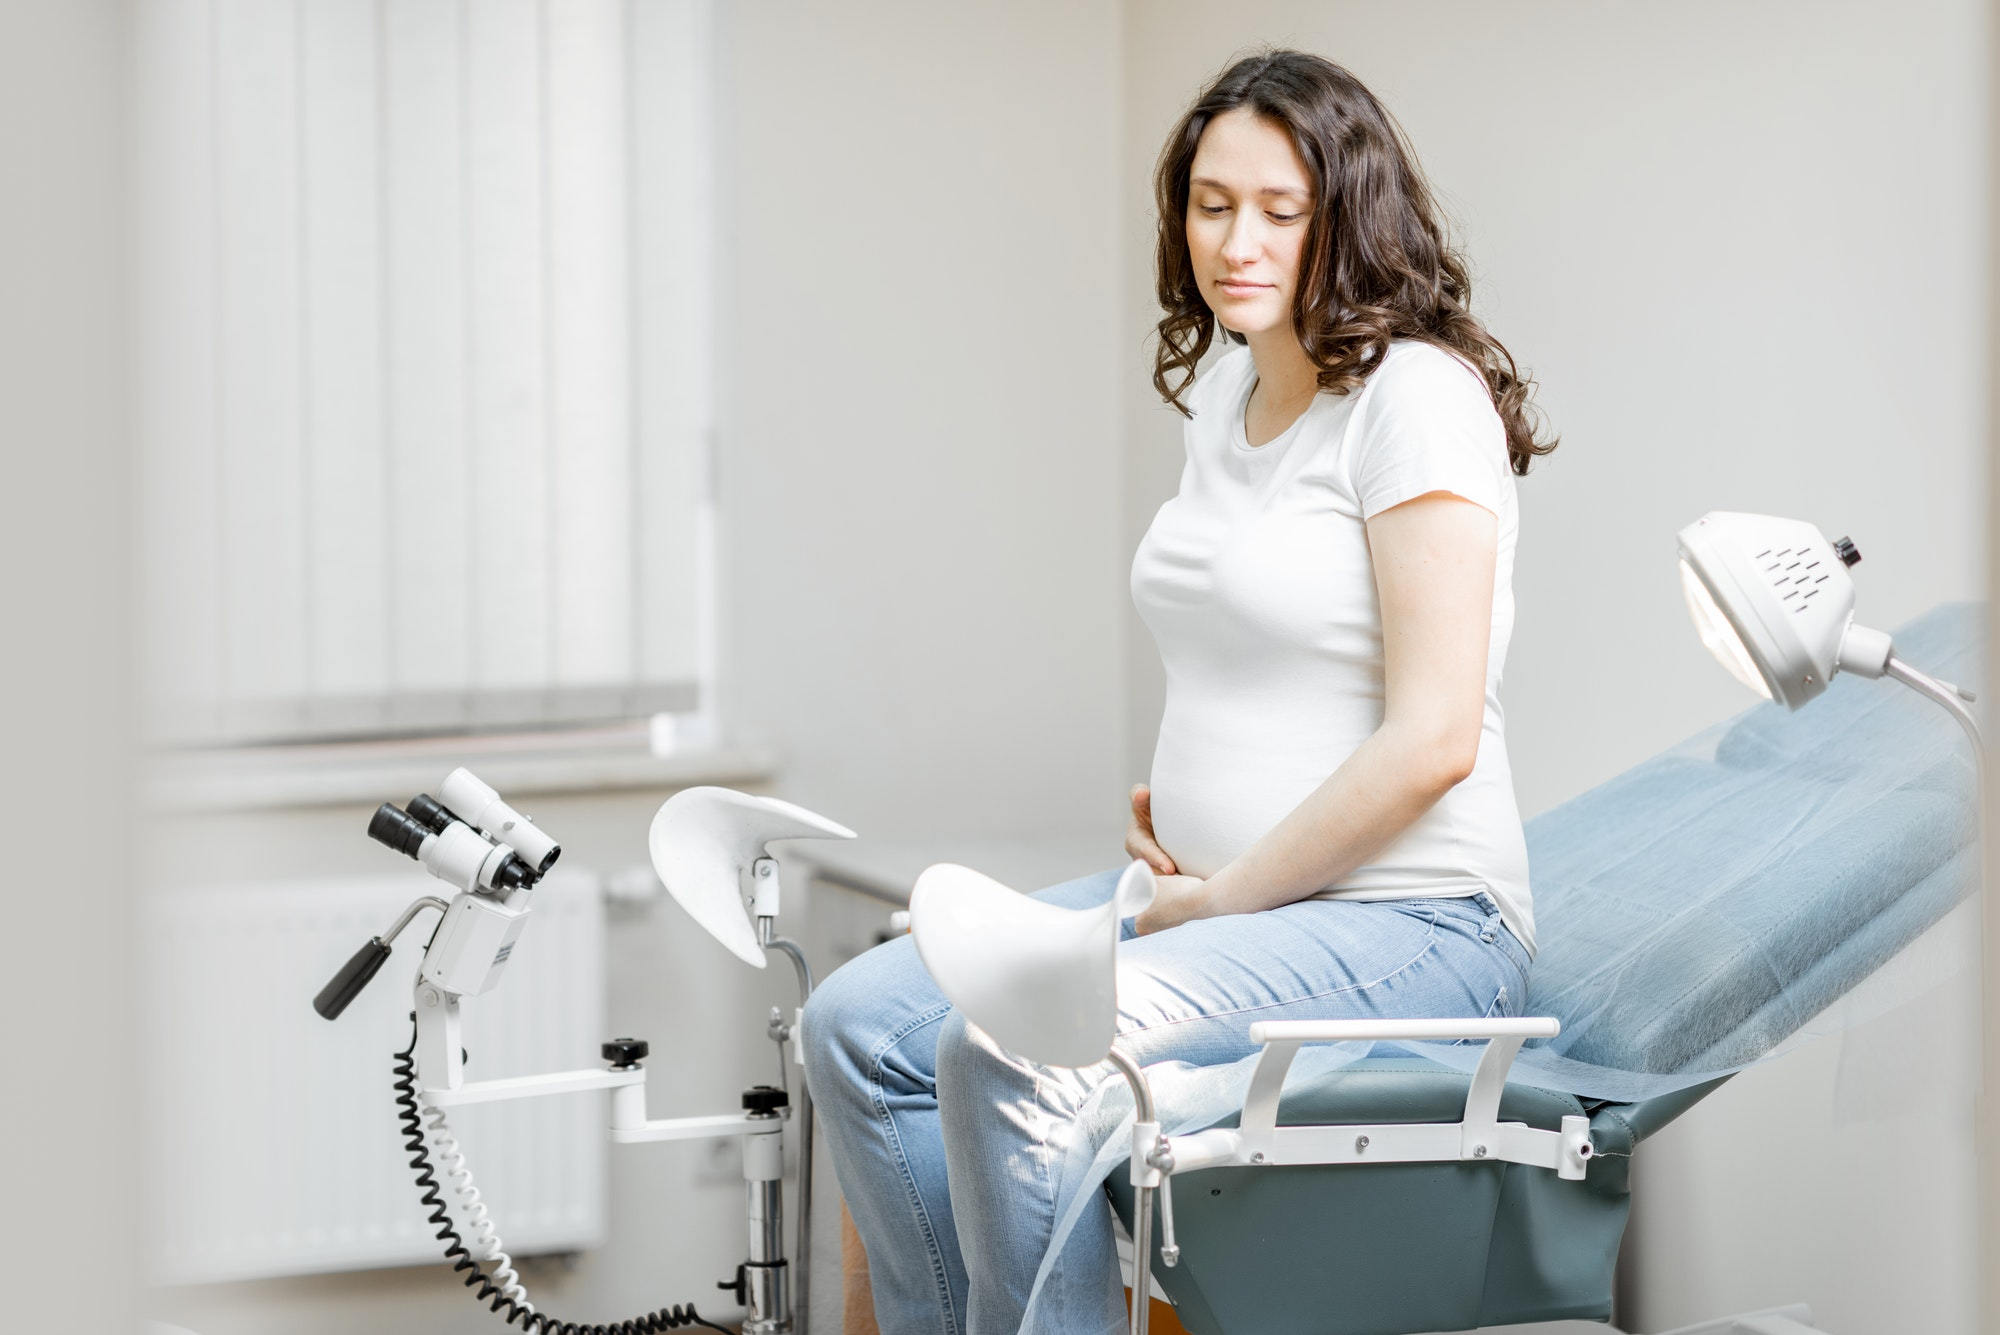 Pregnant woman in a hospital